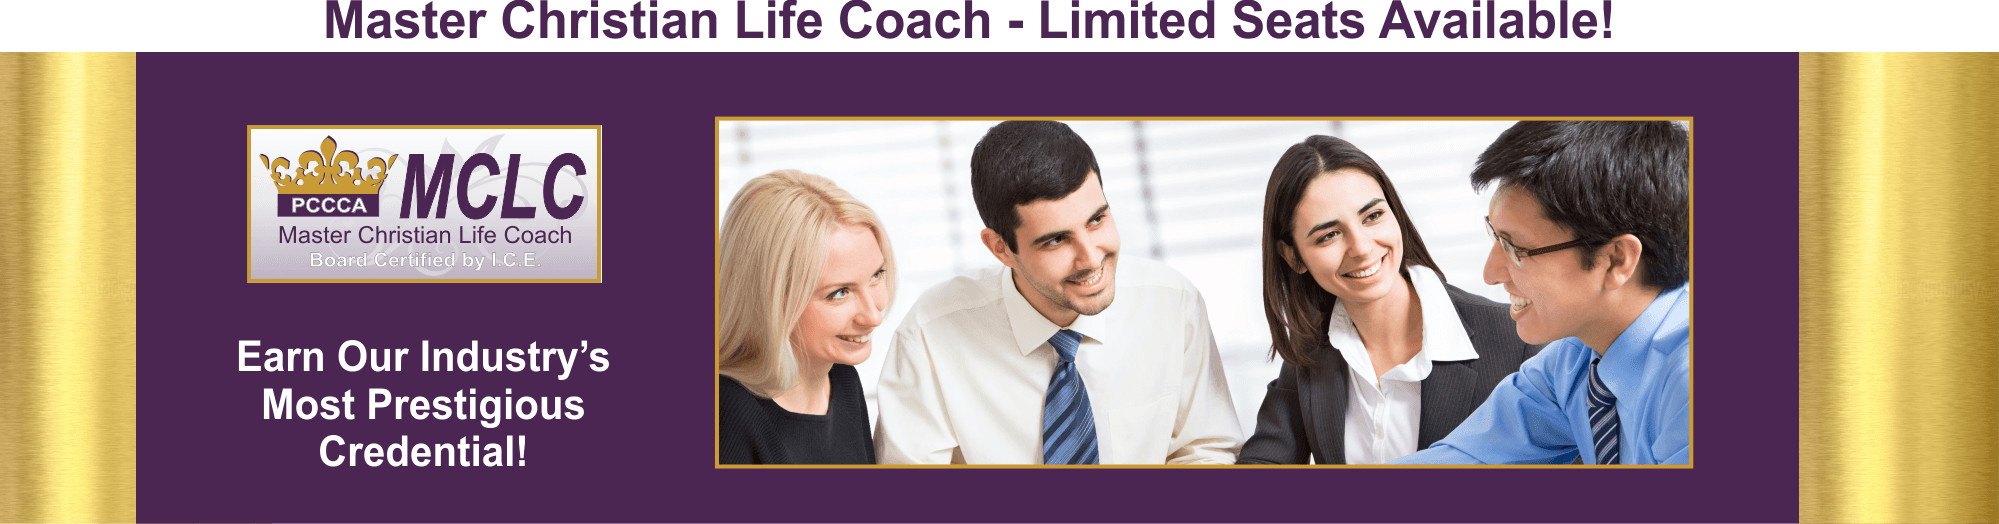 Advanced Master Christian Life Coach Course